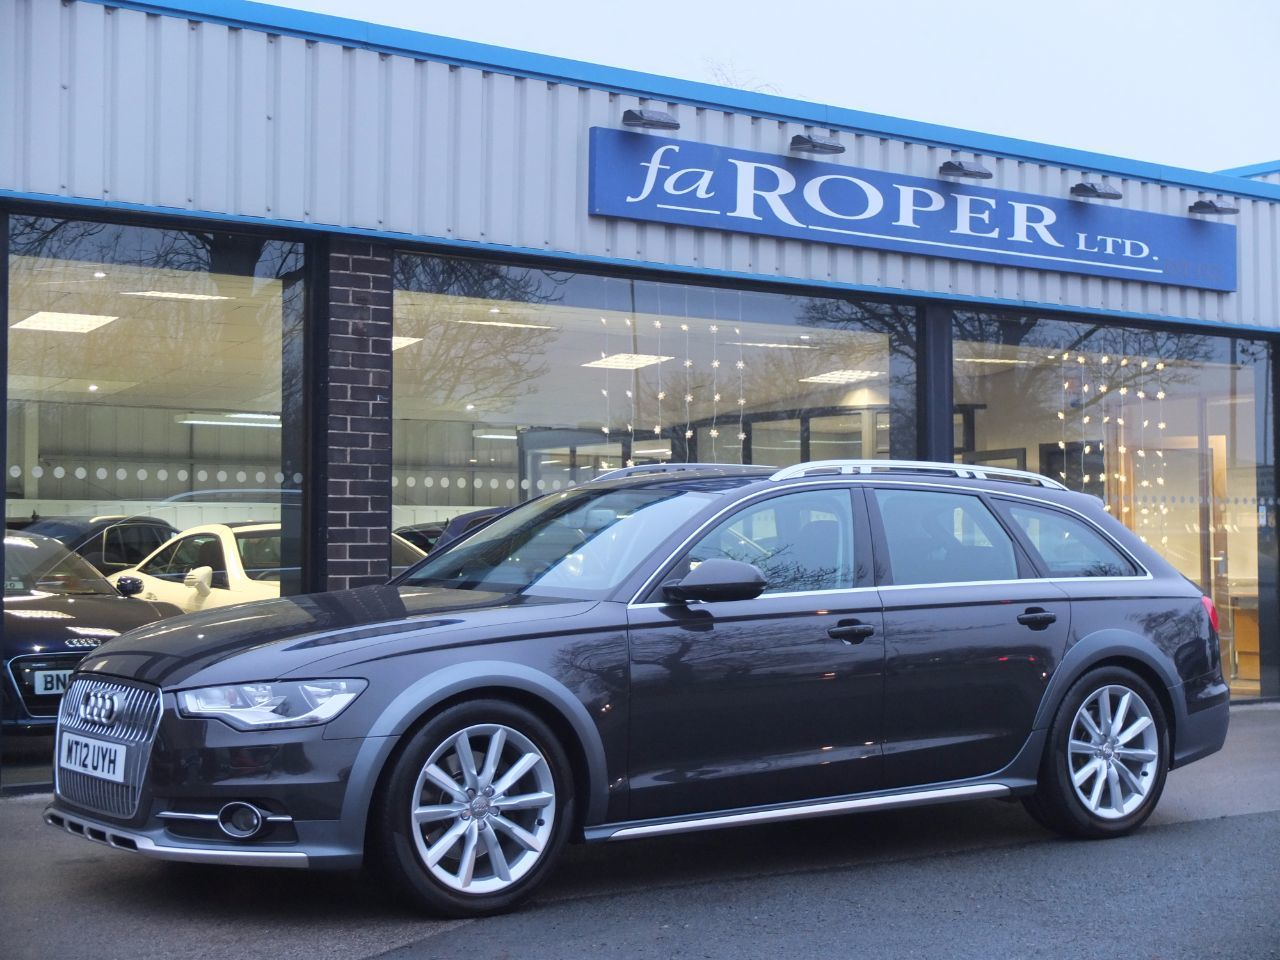 used audi a6 allroad 3 0 tdi quattro 204ps s tronic for sale in bradford west yorkshire fa. Black Bedroom Furniture Sets. Home Design Ideas